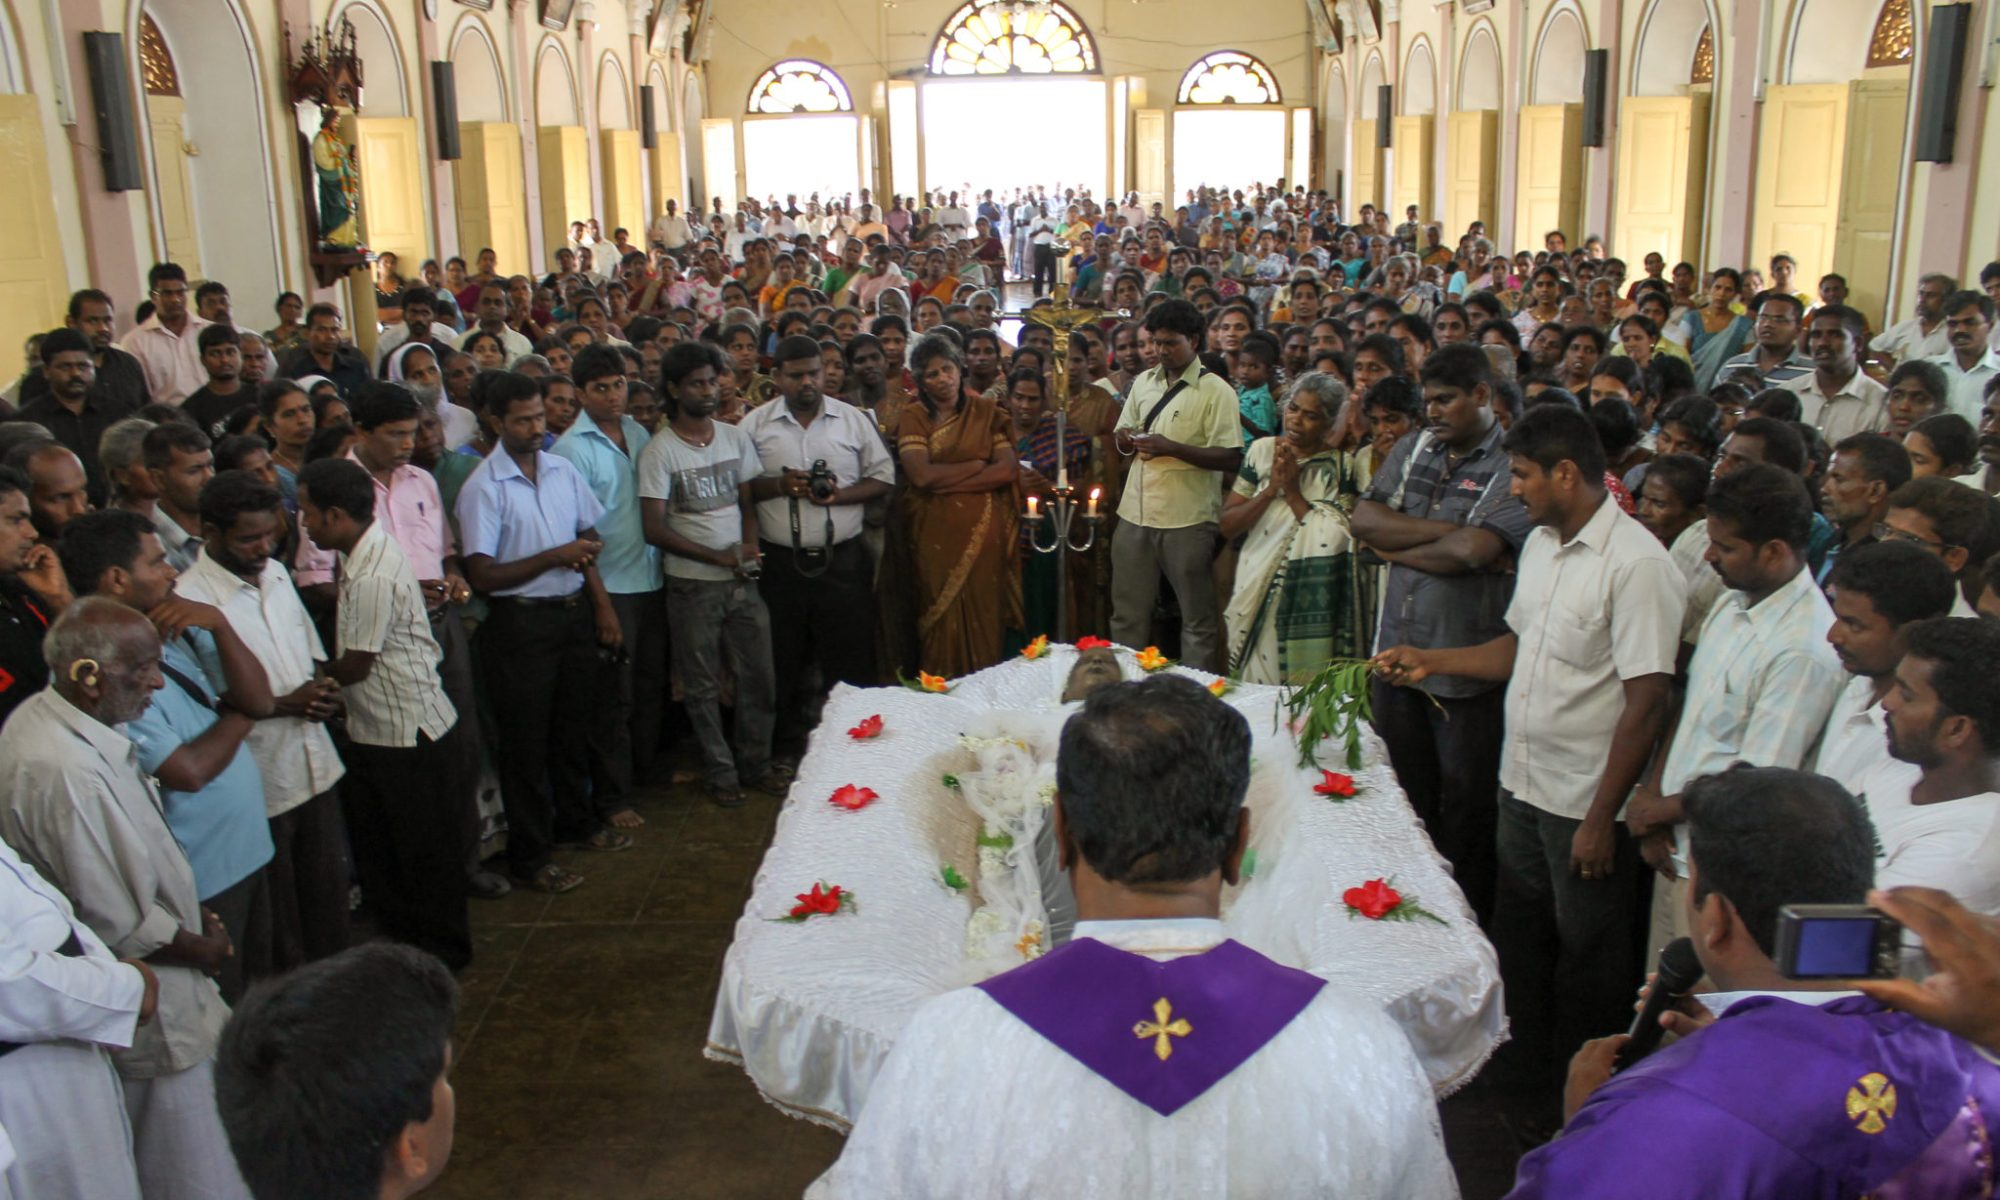 8th August 2012 Paithakuur, Jaffna Performing the Funeral traditions under high security for 34 Year Delruxon Mariyathas